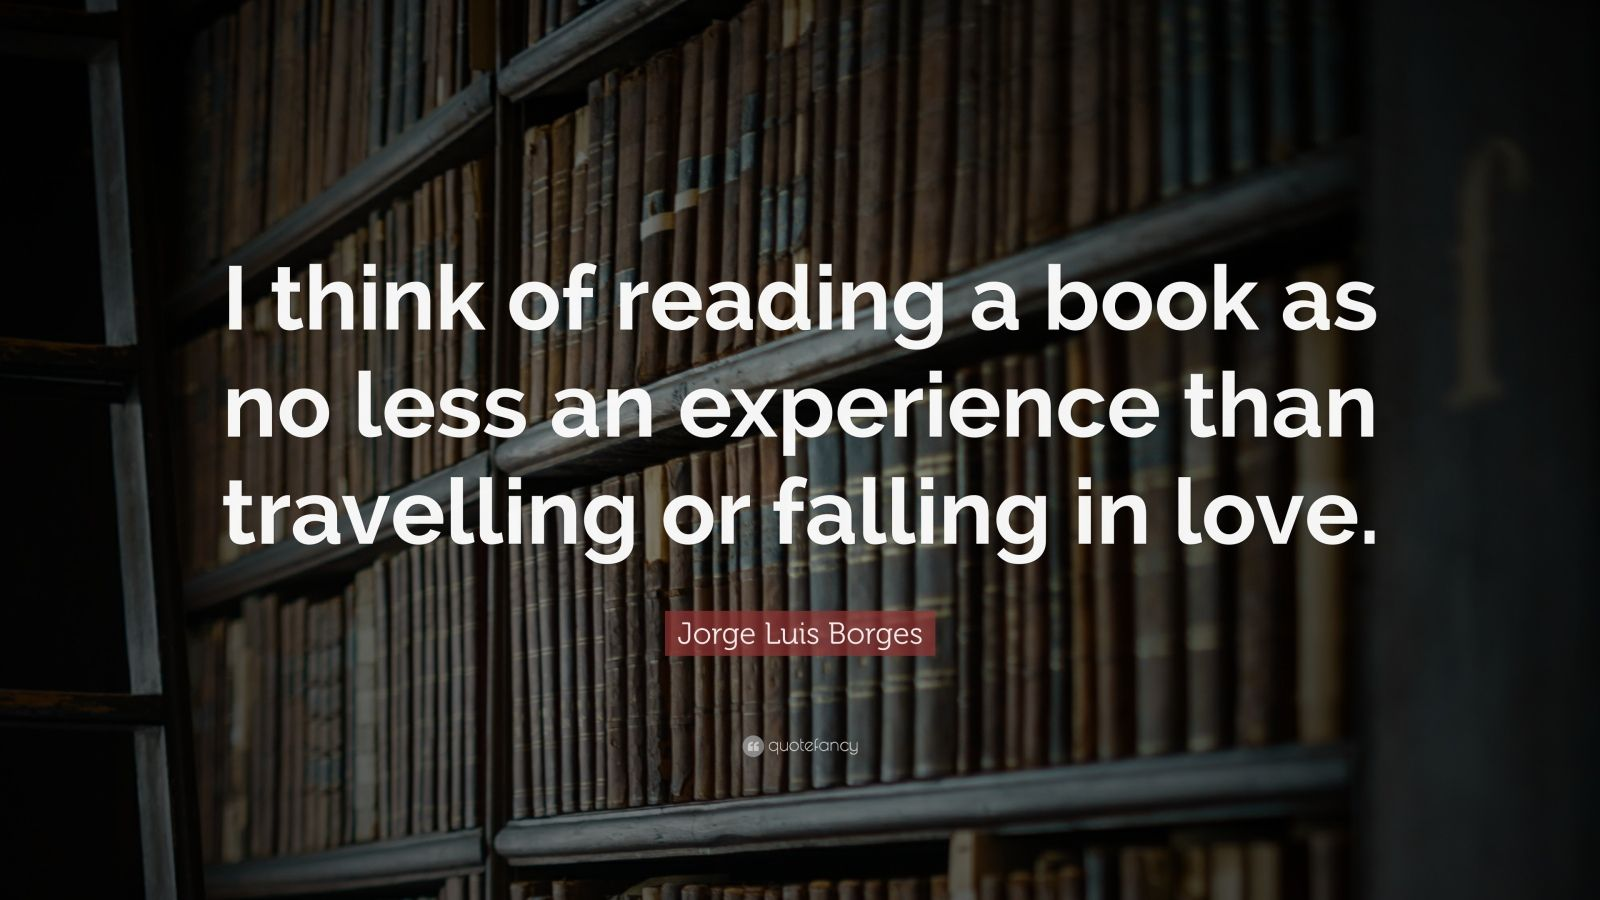 """Jorge Luis Borges Quote: """"I think of reading a book as no less an experience than travelling or falling in love."""""""